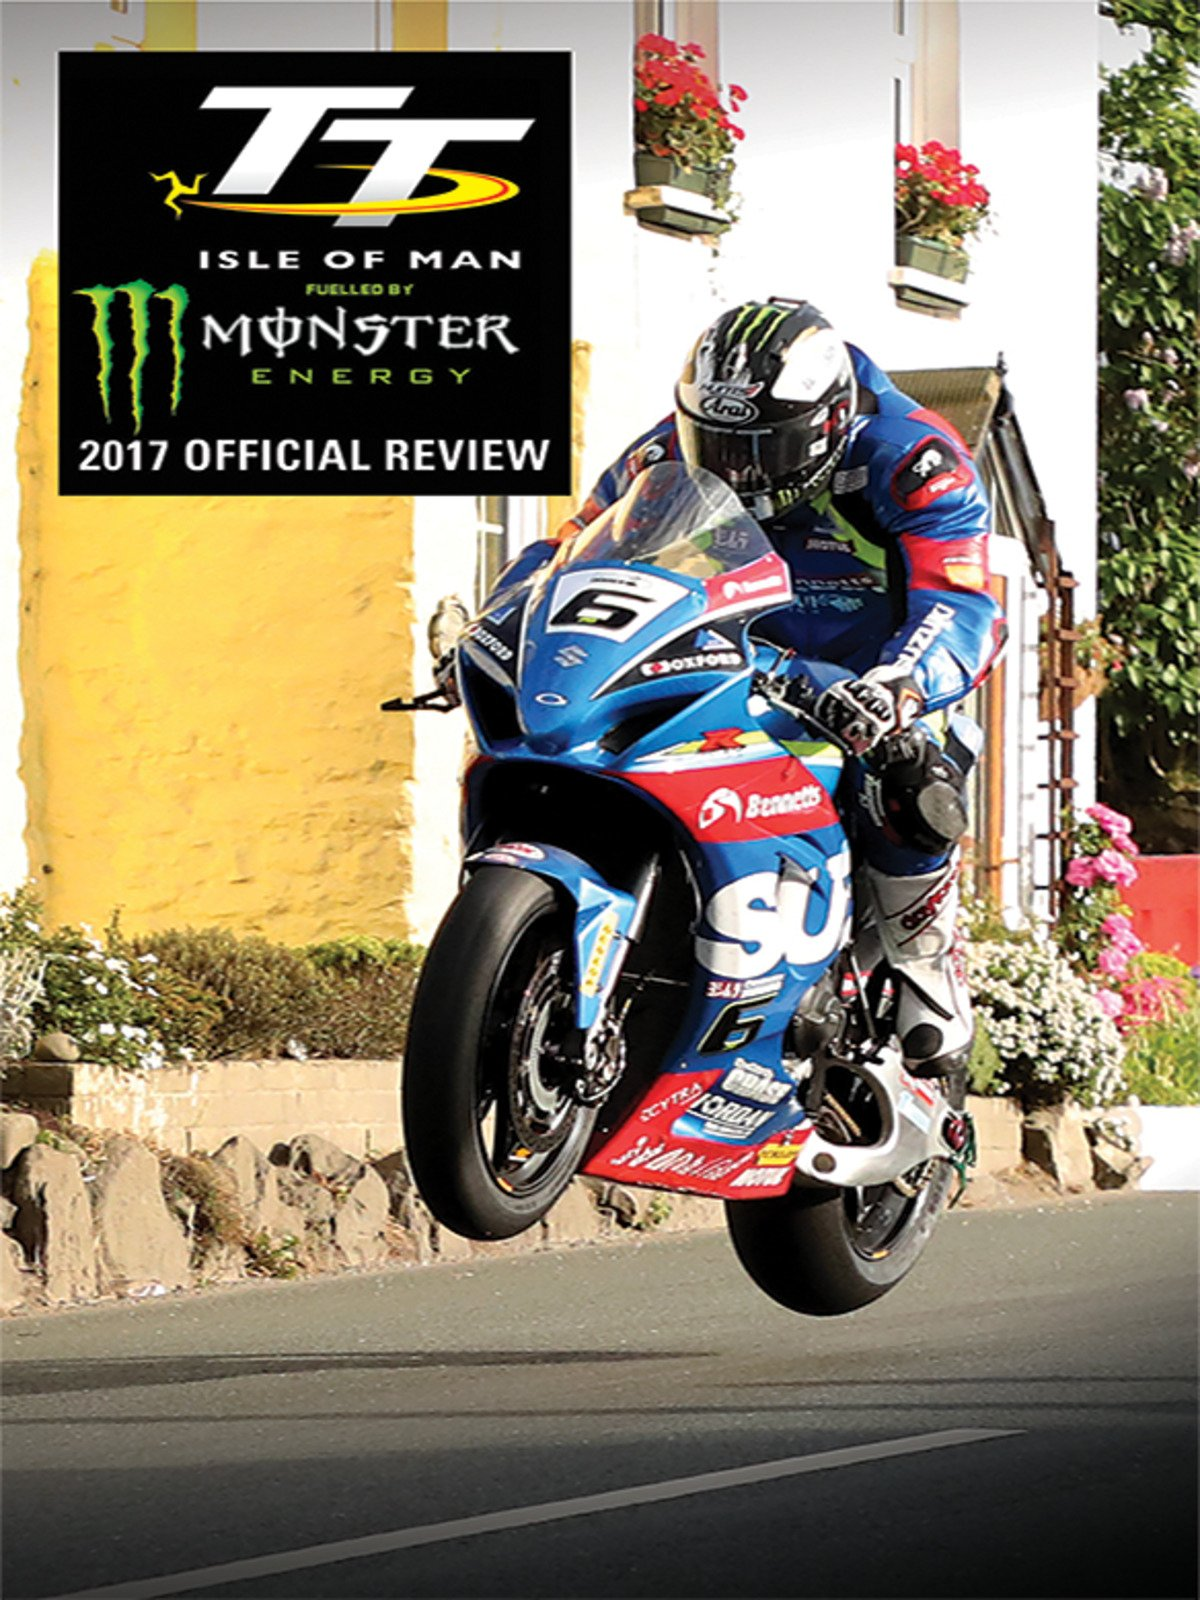 Isle of Man TT Review 2017